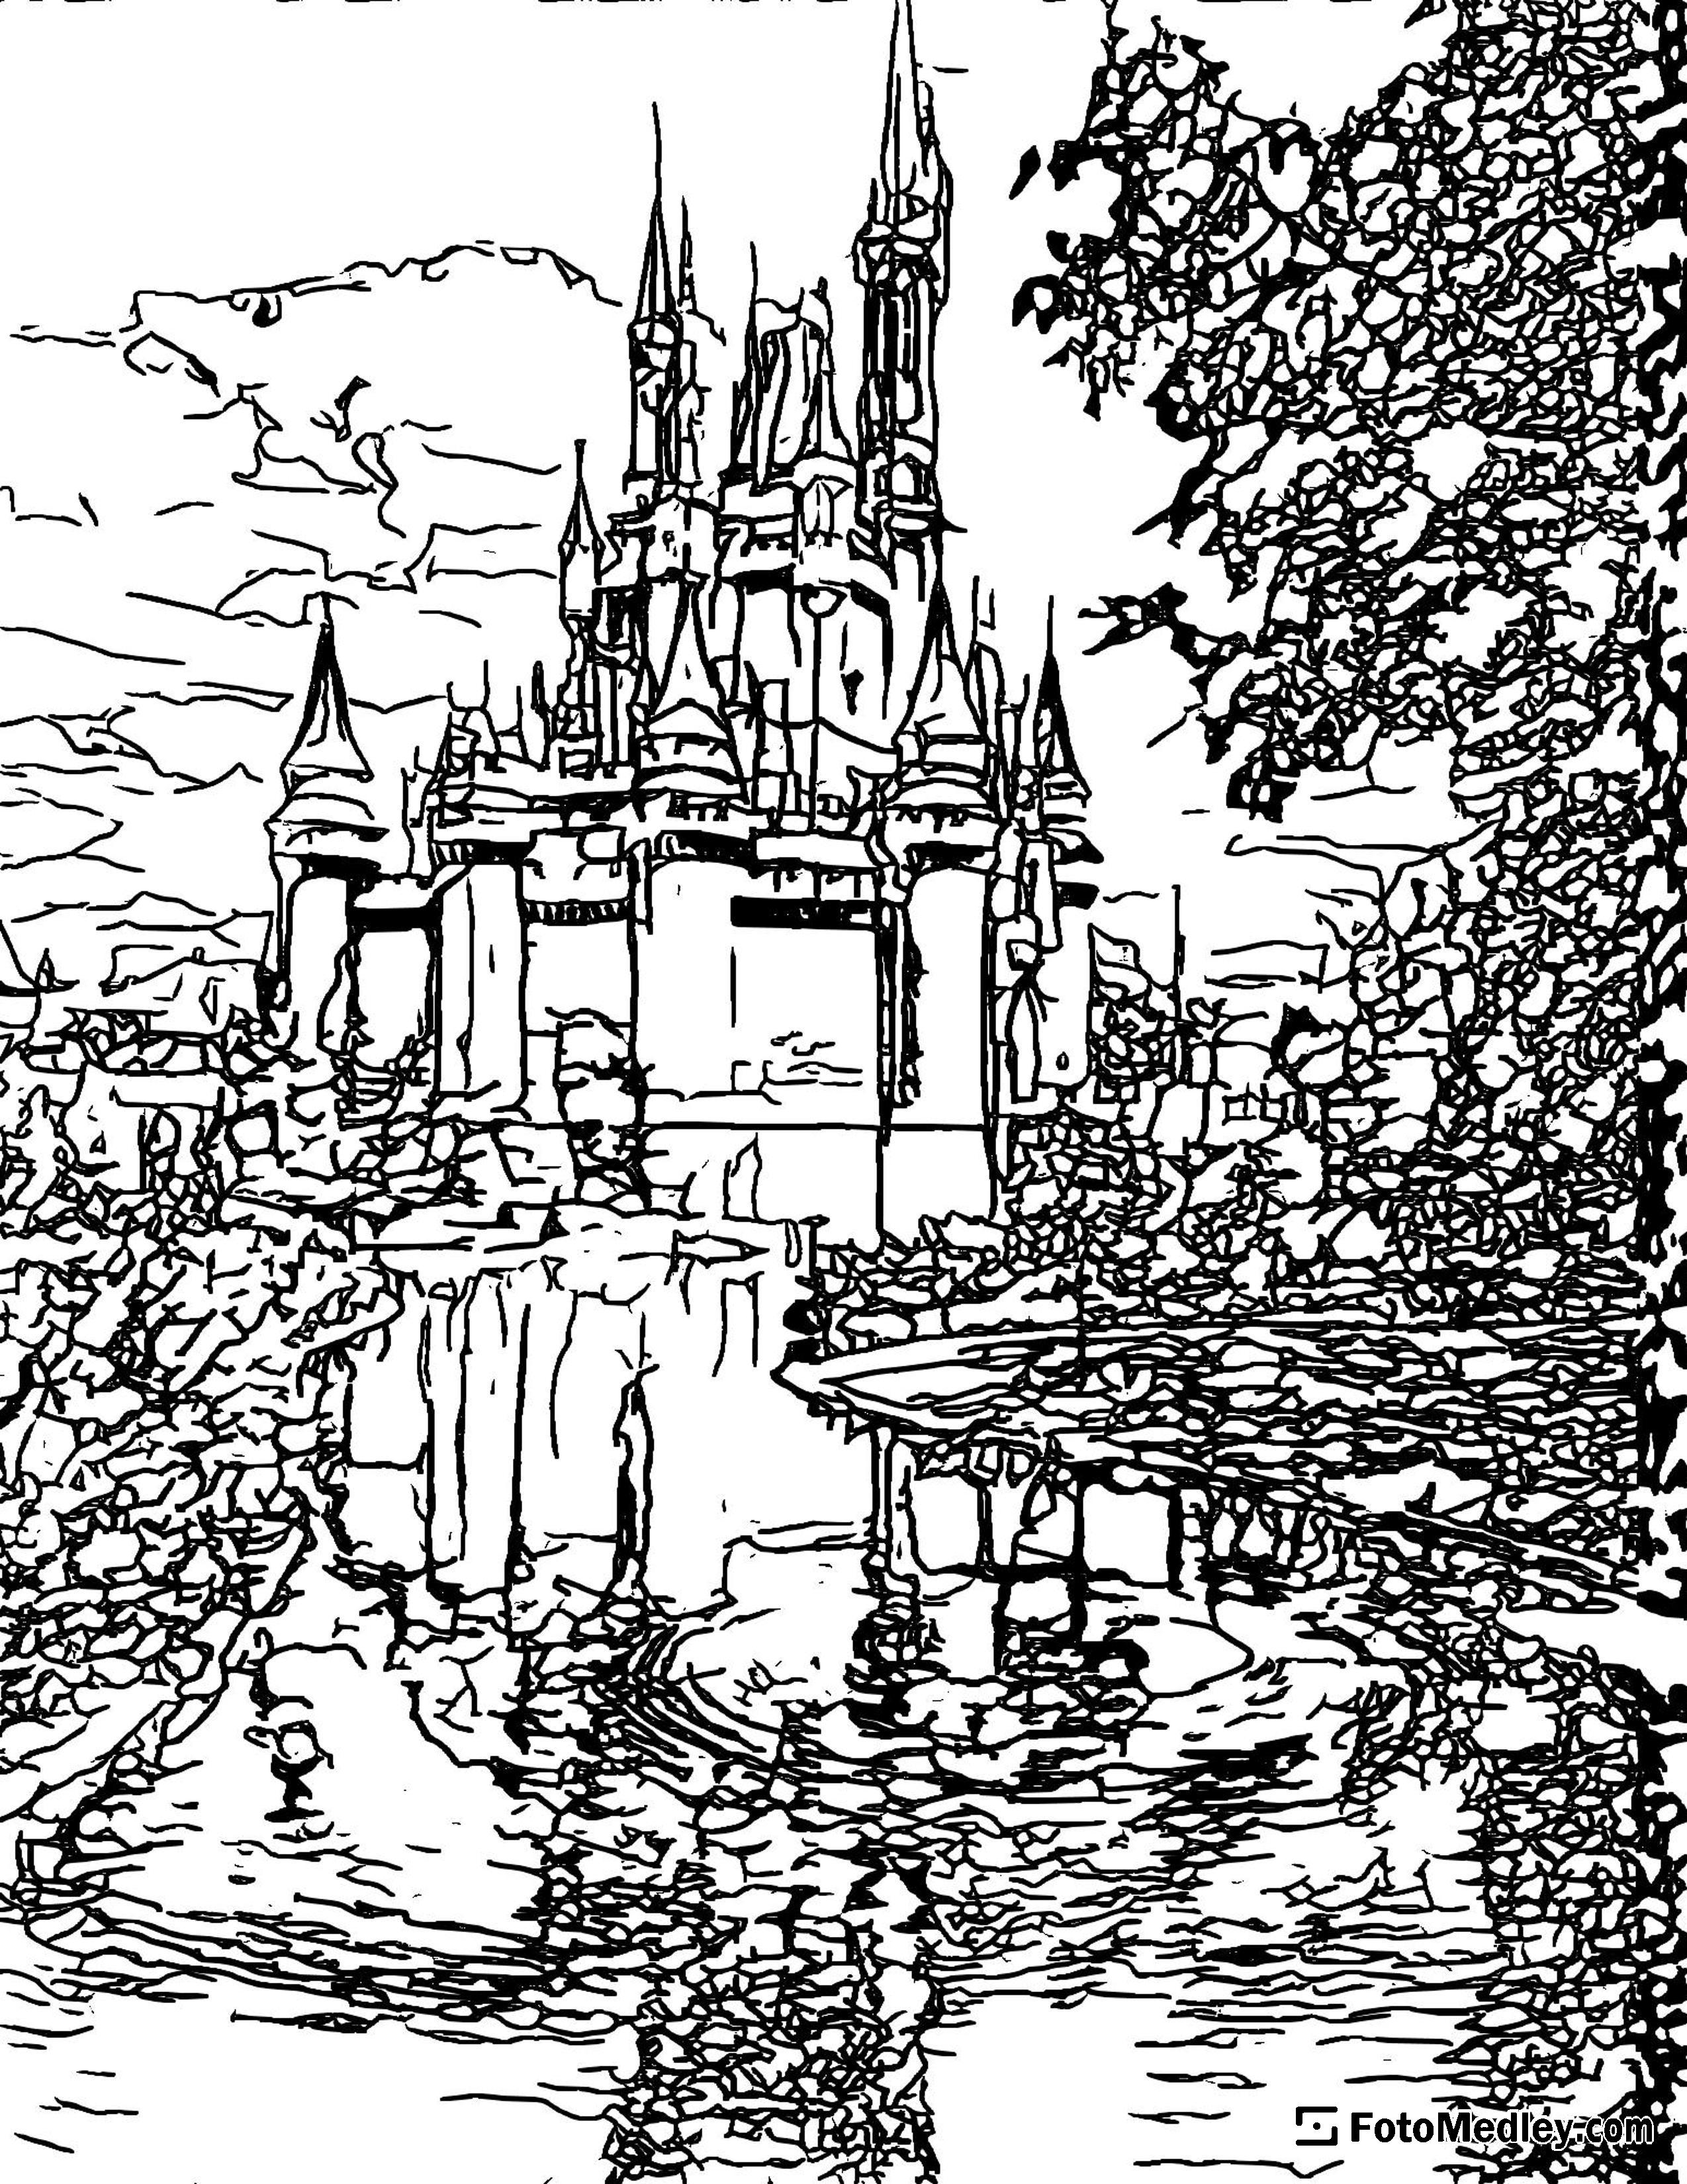 A detailed coloring page of the Cinderella Castle seen from the side, with a pond and trees.